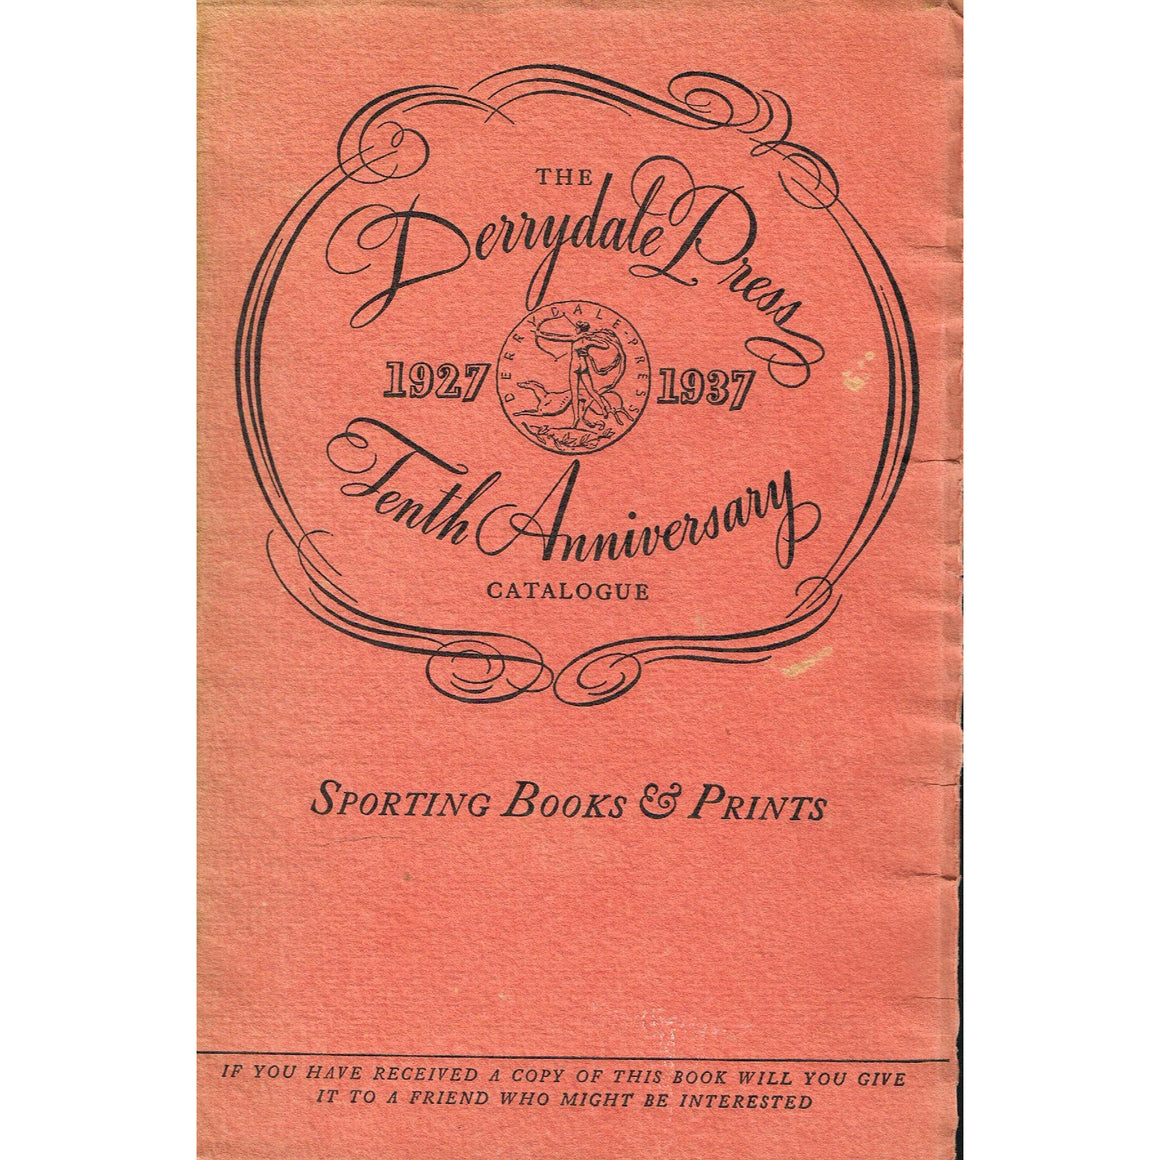 The Derrydale Press Tenth Anniversary Catalogue : 1927-1937